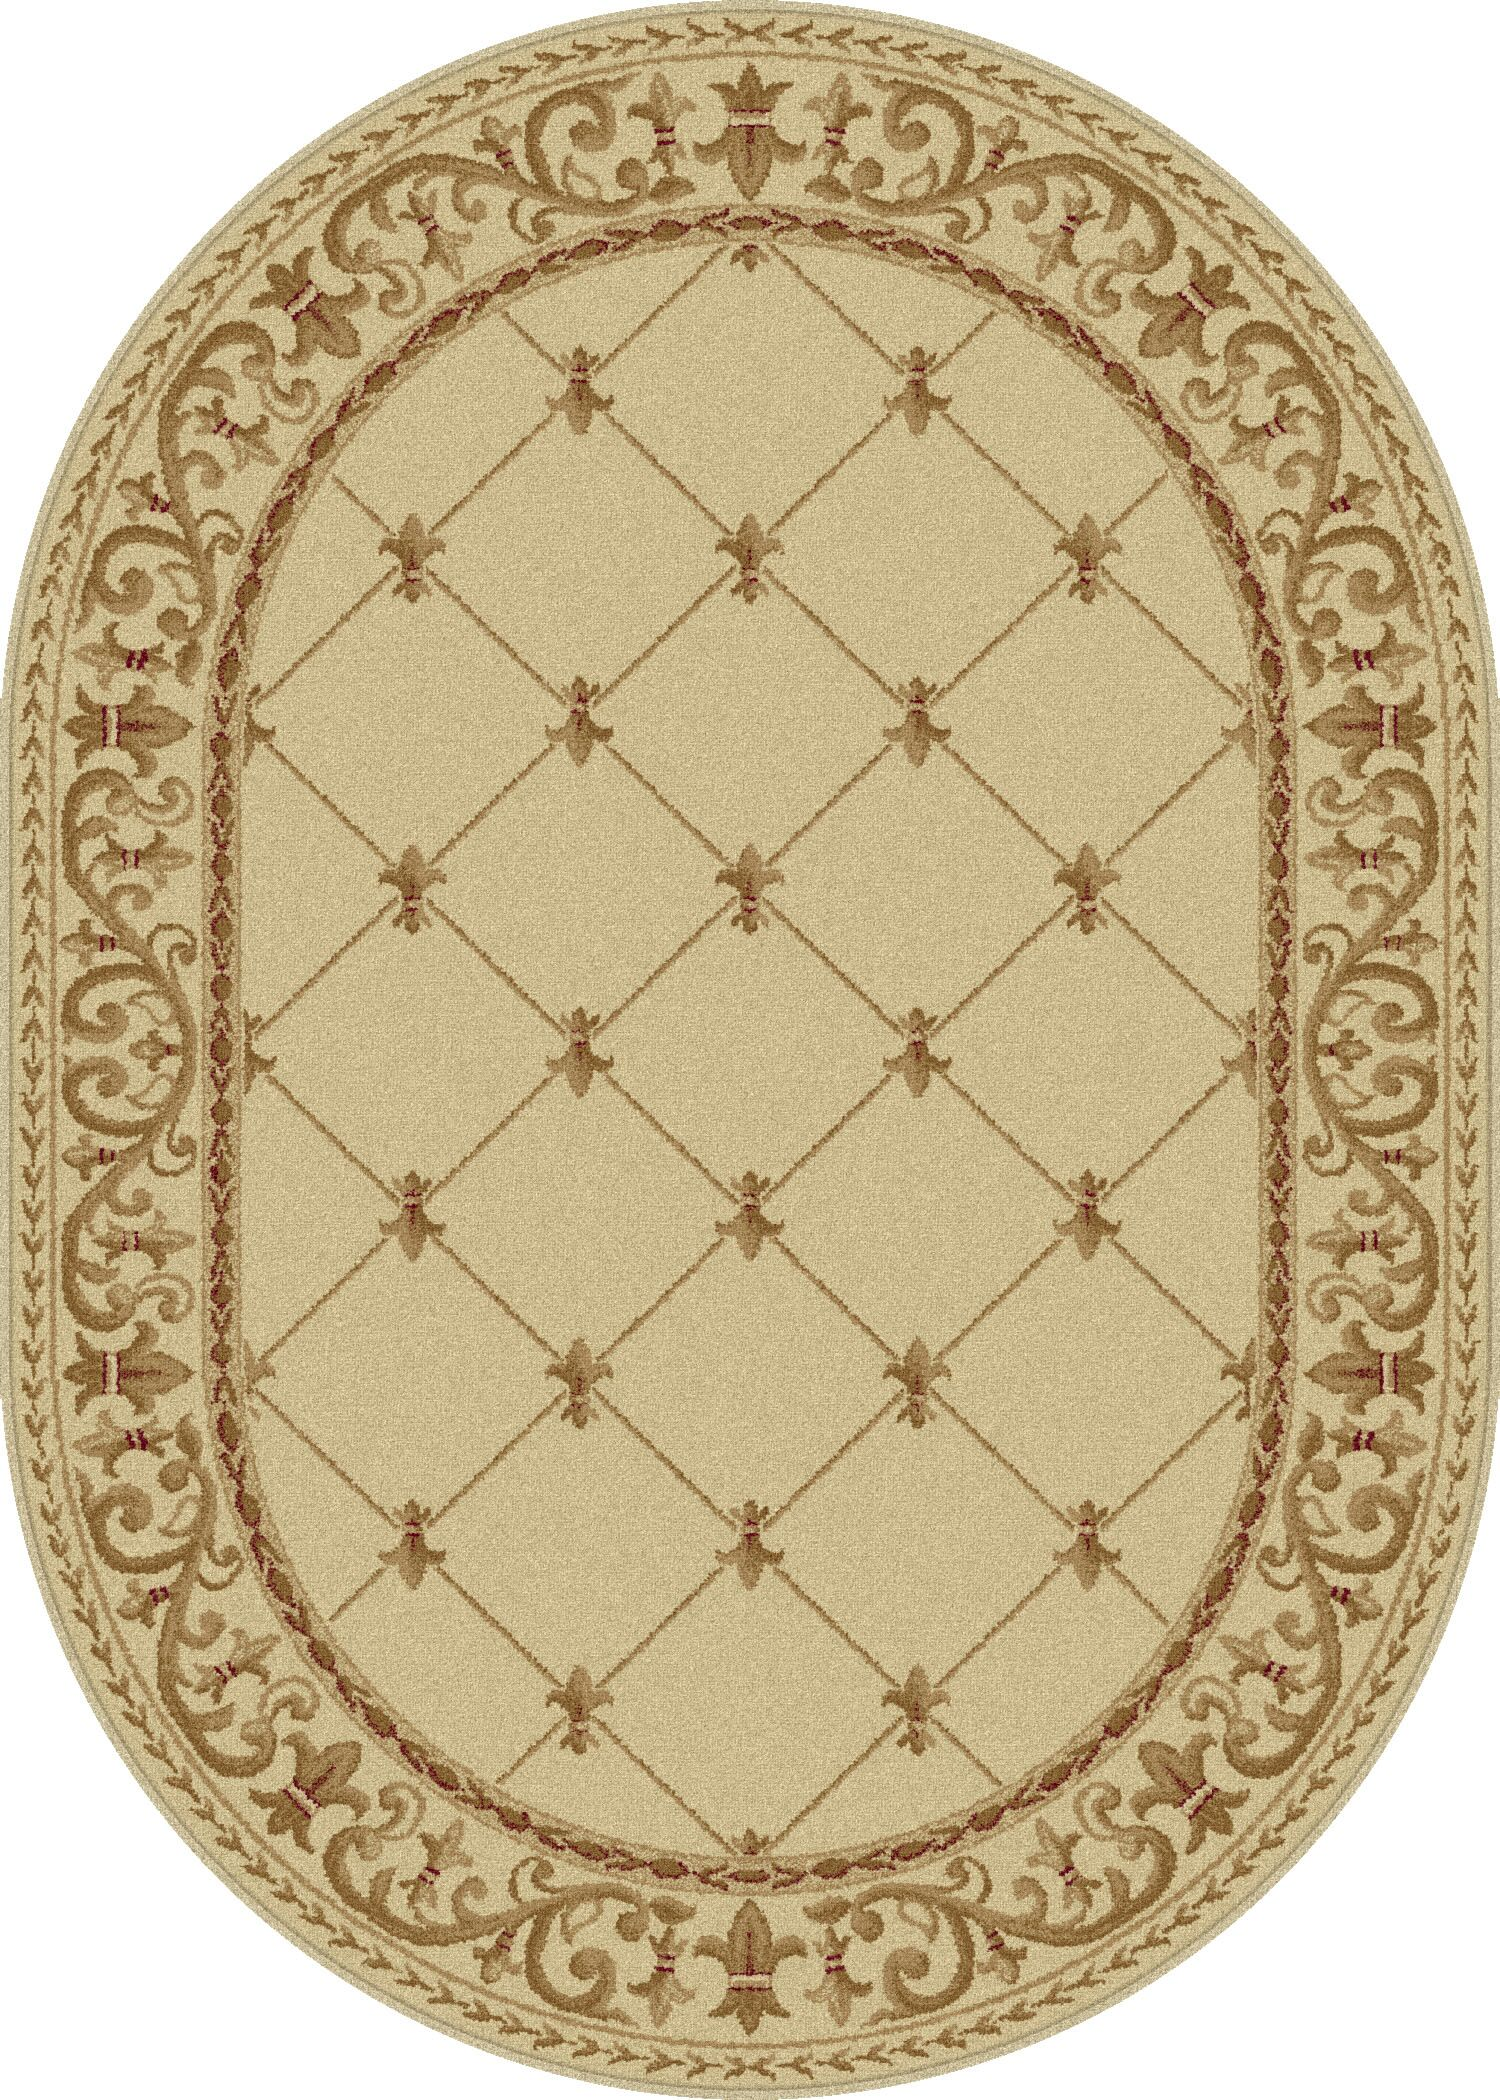 Clarence Ivory Area Rug Rug Size: 5'3'' x 7'3'' Oval